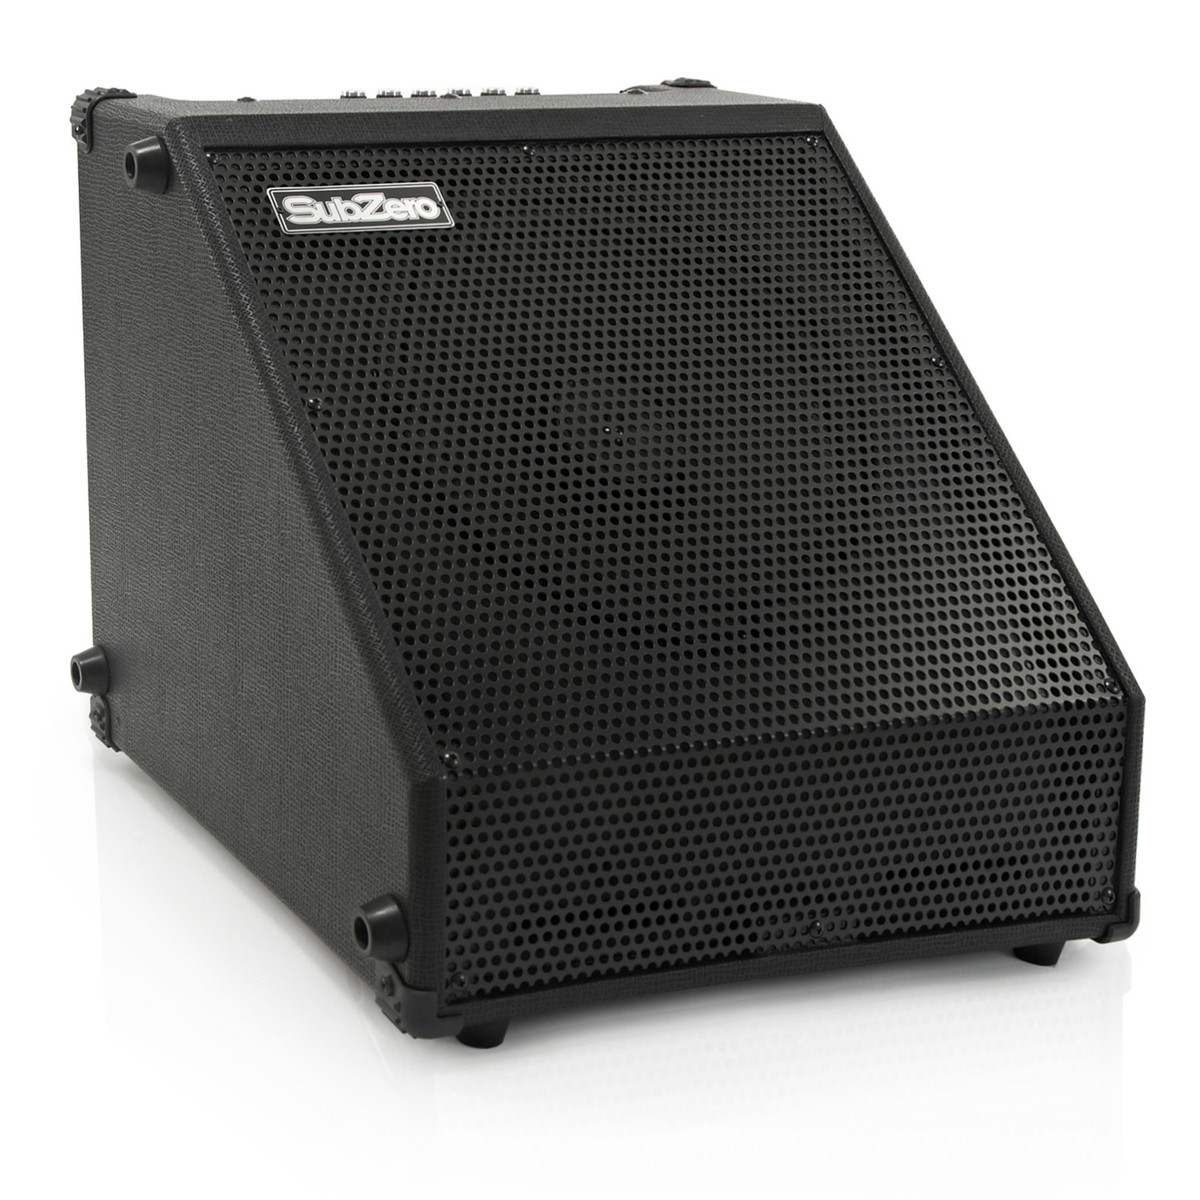 subzero dr 60 drum keyboard amp by gear4music at. Black Bedroom Furniture Sets. Home Design Ideas